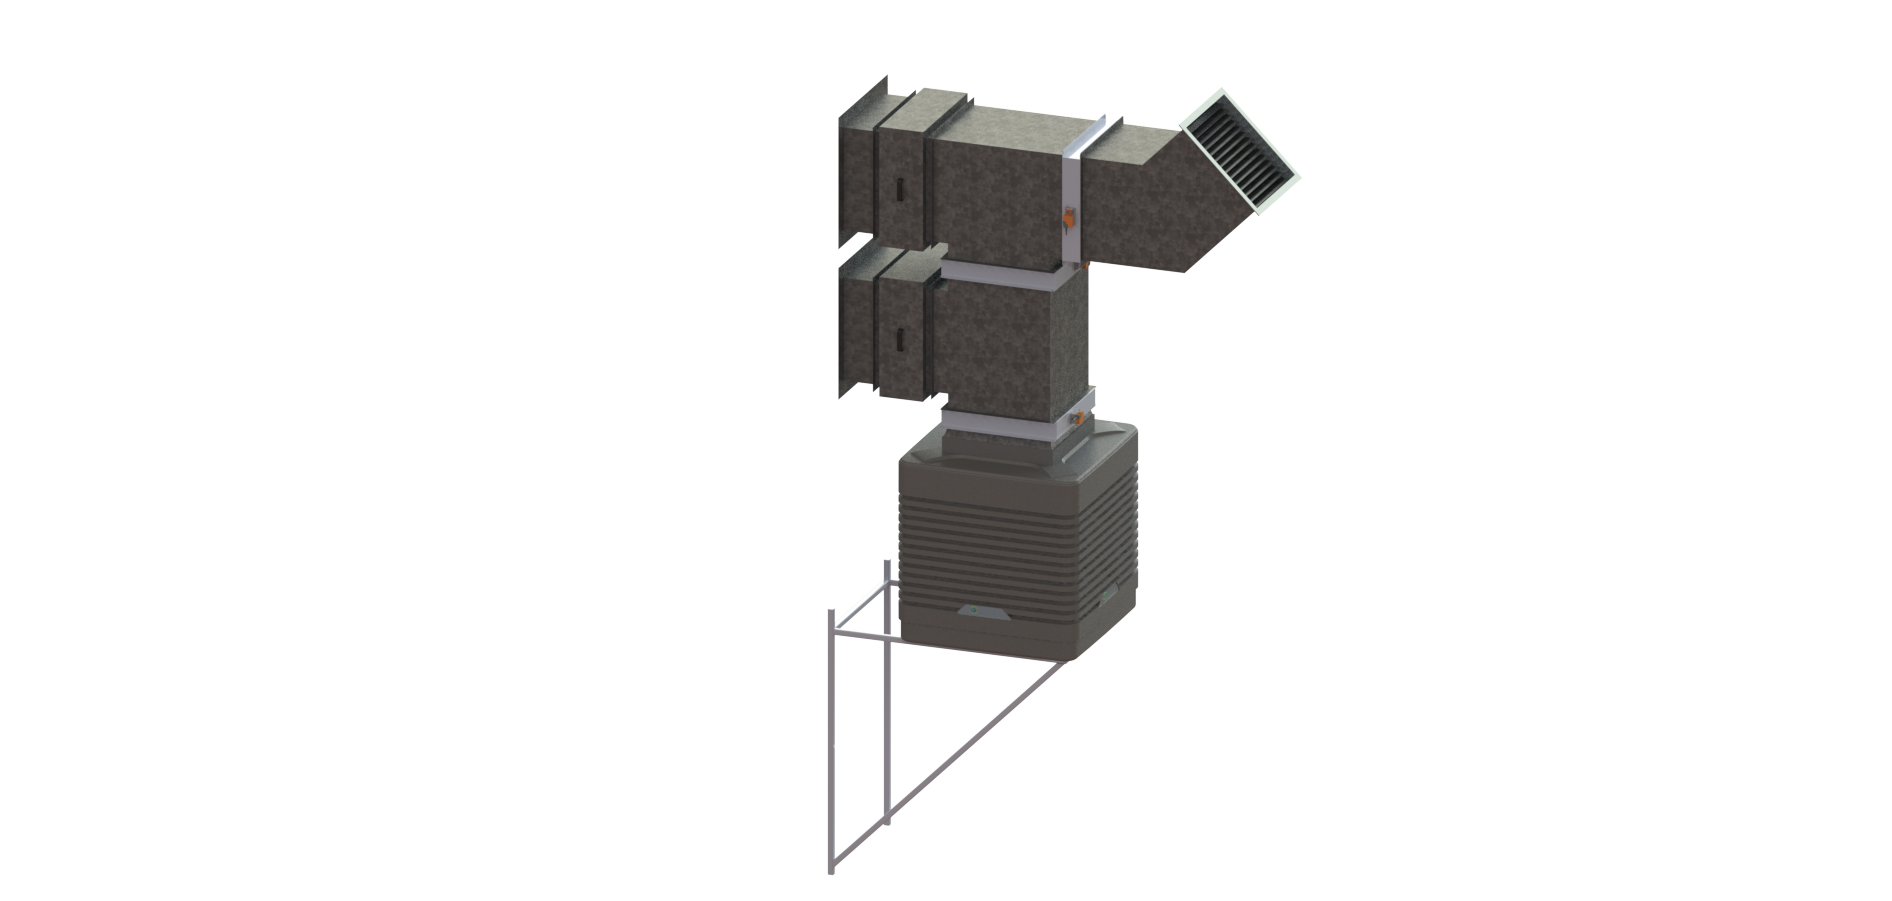 EcoCooling WetBox Large - Top Flow Configuration - Wall mounted air handling solution with EC fans